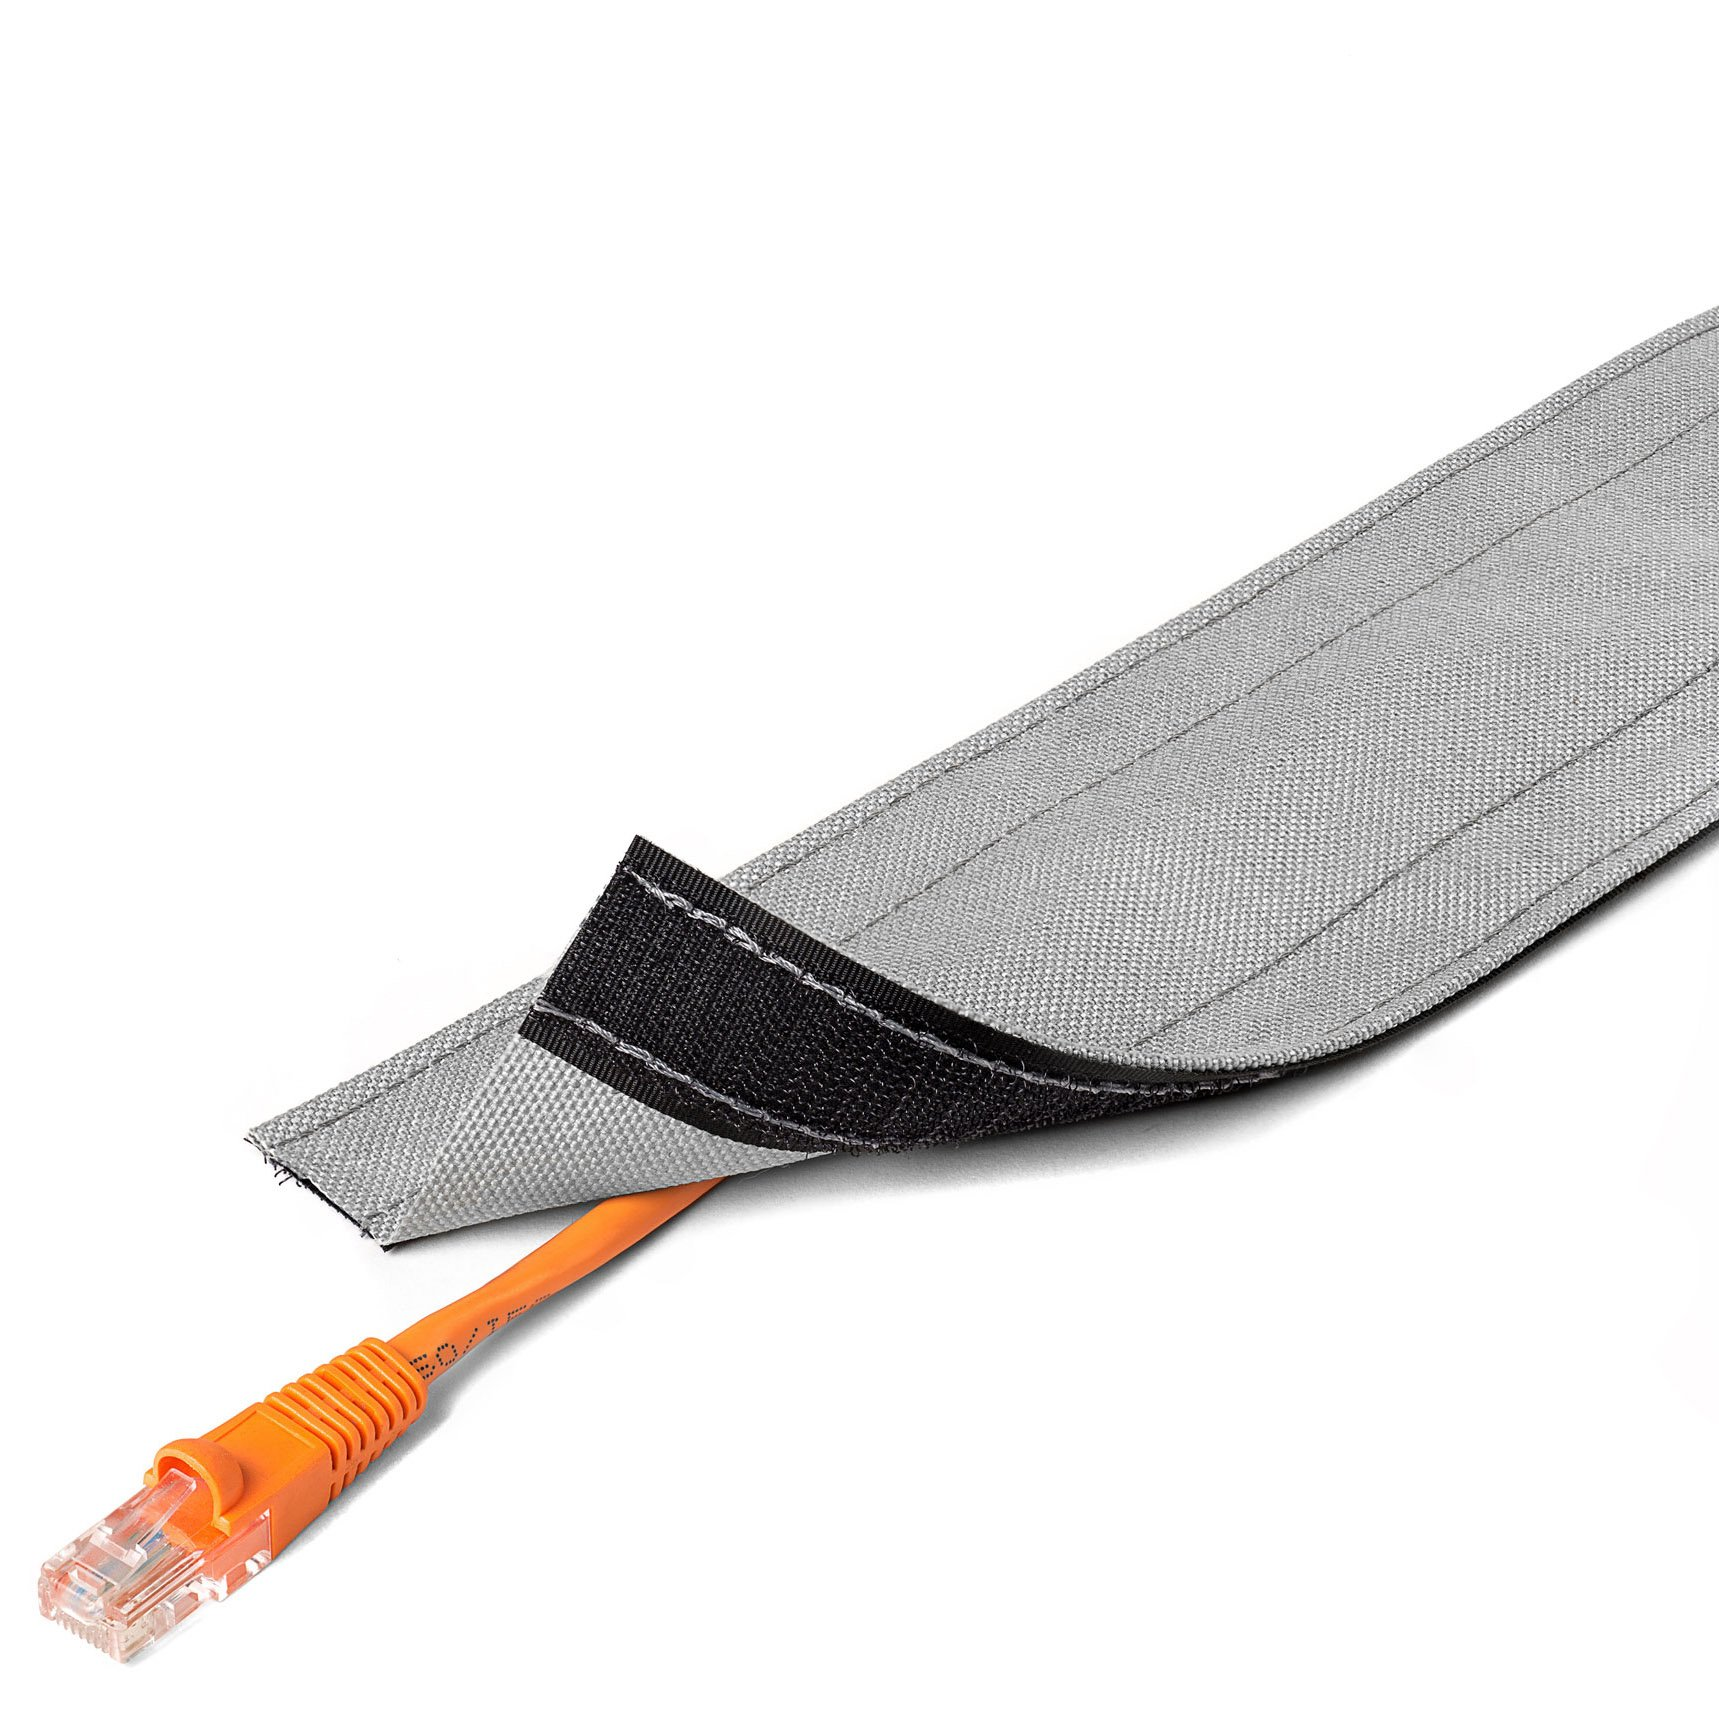 5'' Wide Dura Race Carpet Cord Cover - 100FT Length - Color: Gray